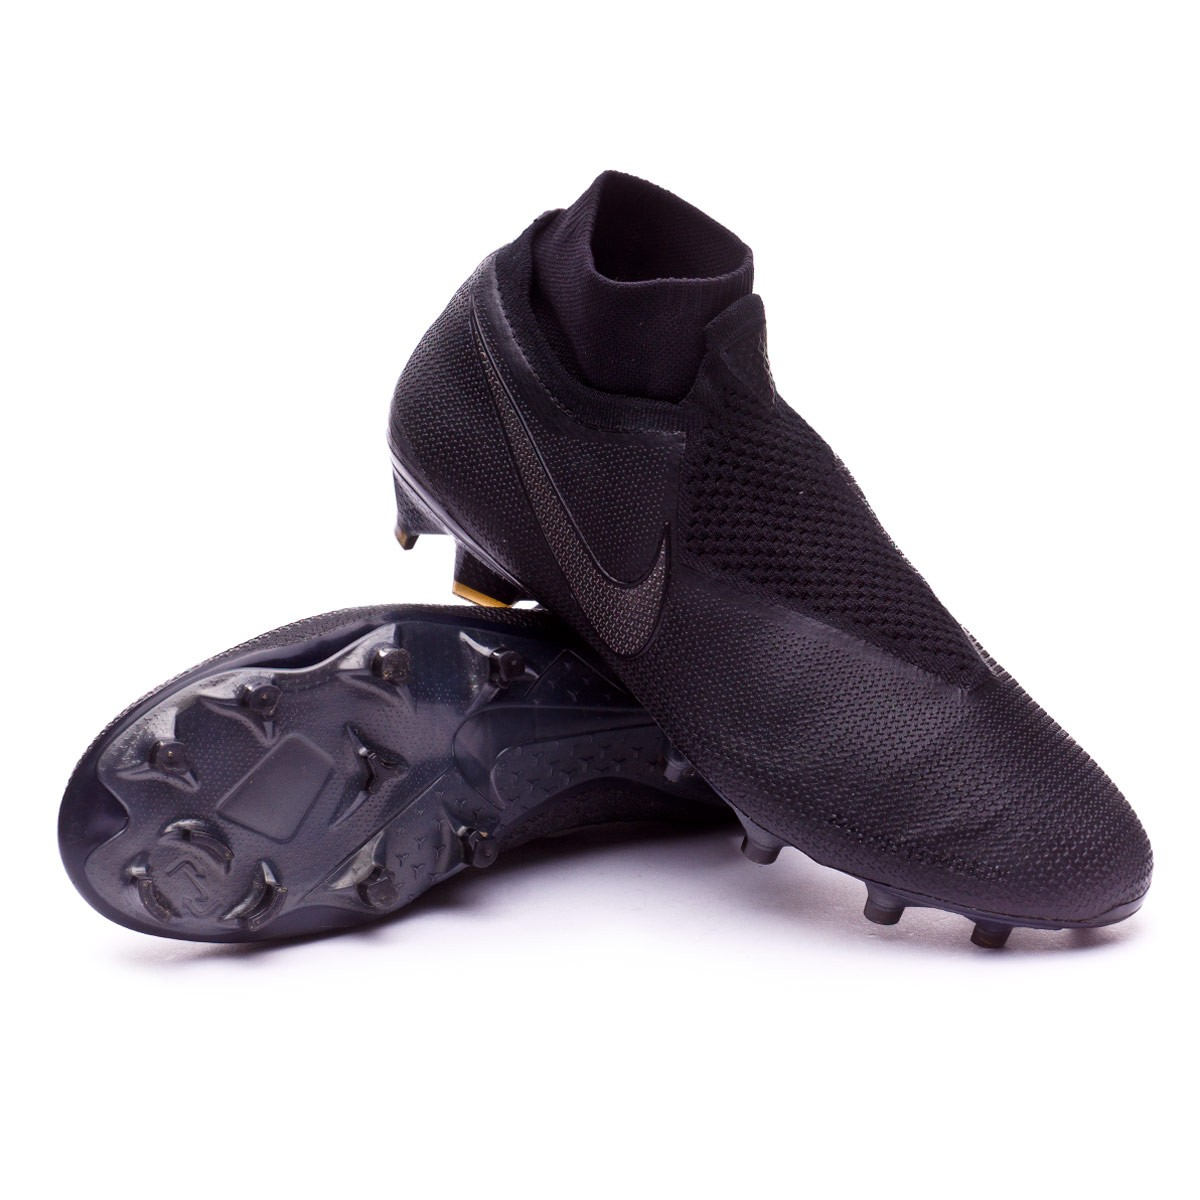 best service 0971b 5dec6 Nike Phantom Vision Elite DF FG Boot